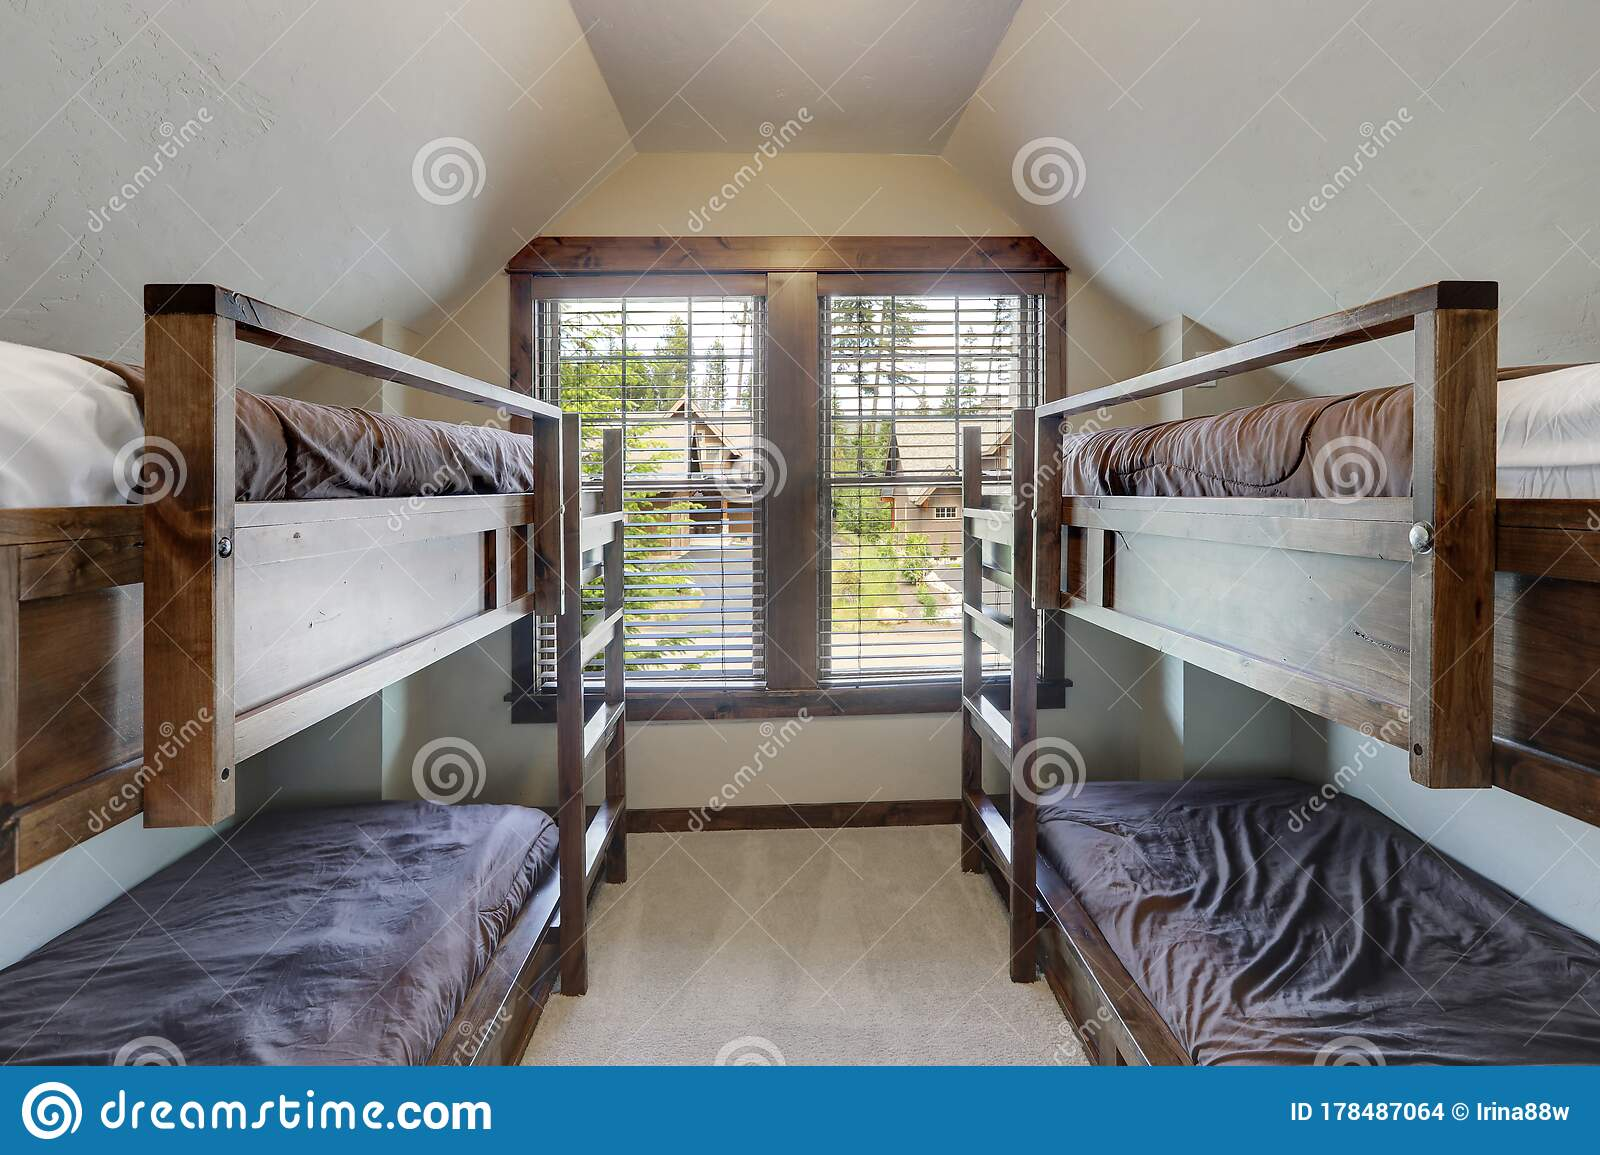 Picture of: Small Room With Vaulted Ceiling Above Garage With Four Bunk Beds For Kids Stock Photo Image Of Clean Designer 178487064